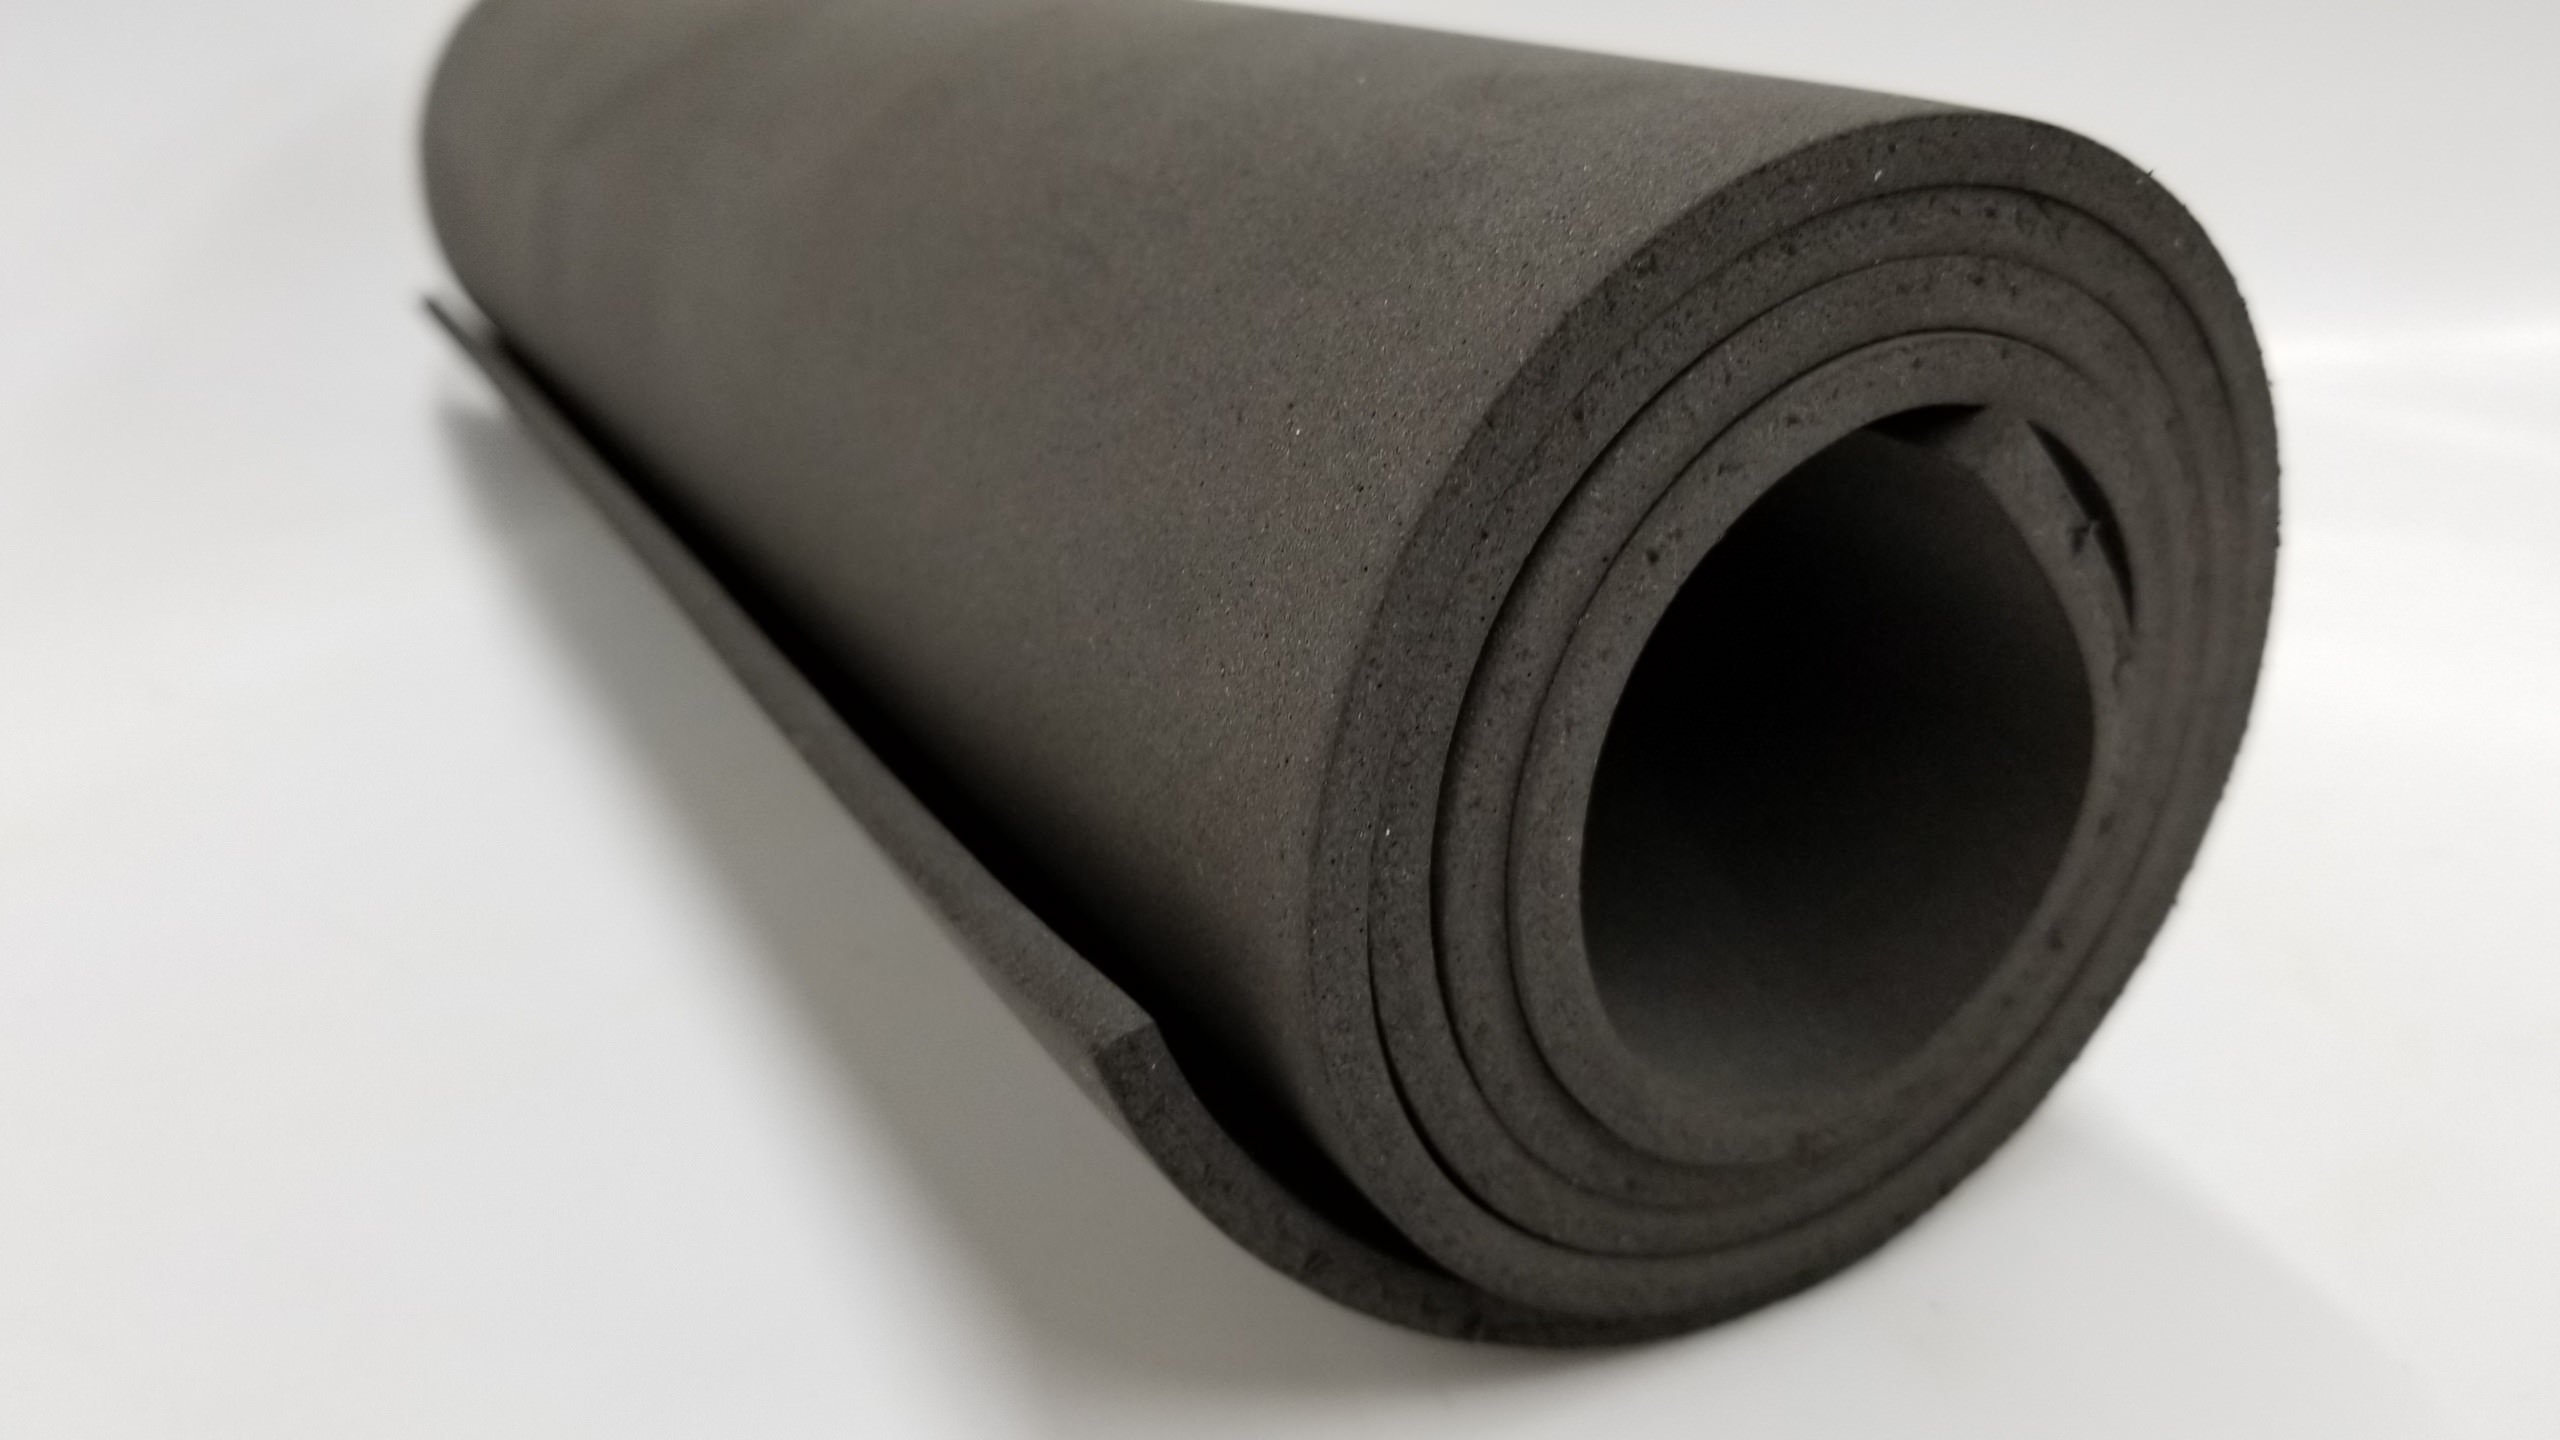 Sponge Neoprene Foam Rubber Sheets and Strips Soft/Medium Hardness- Cut to multiple dimensions and lengths - DIY, Gaskets, Cosplay, Costume, Crafts by Rubber Sheet Warehouse